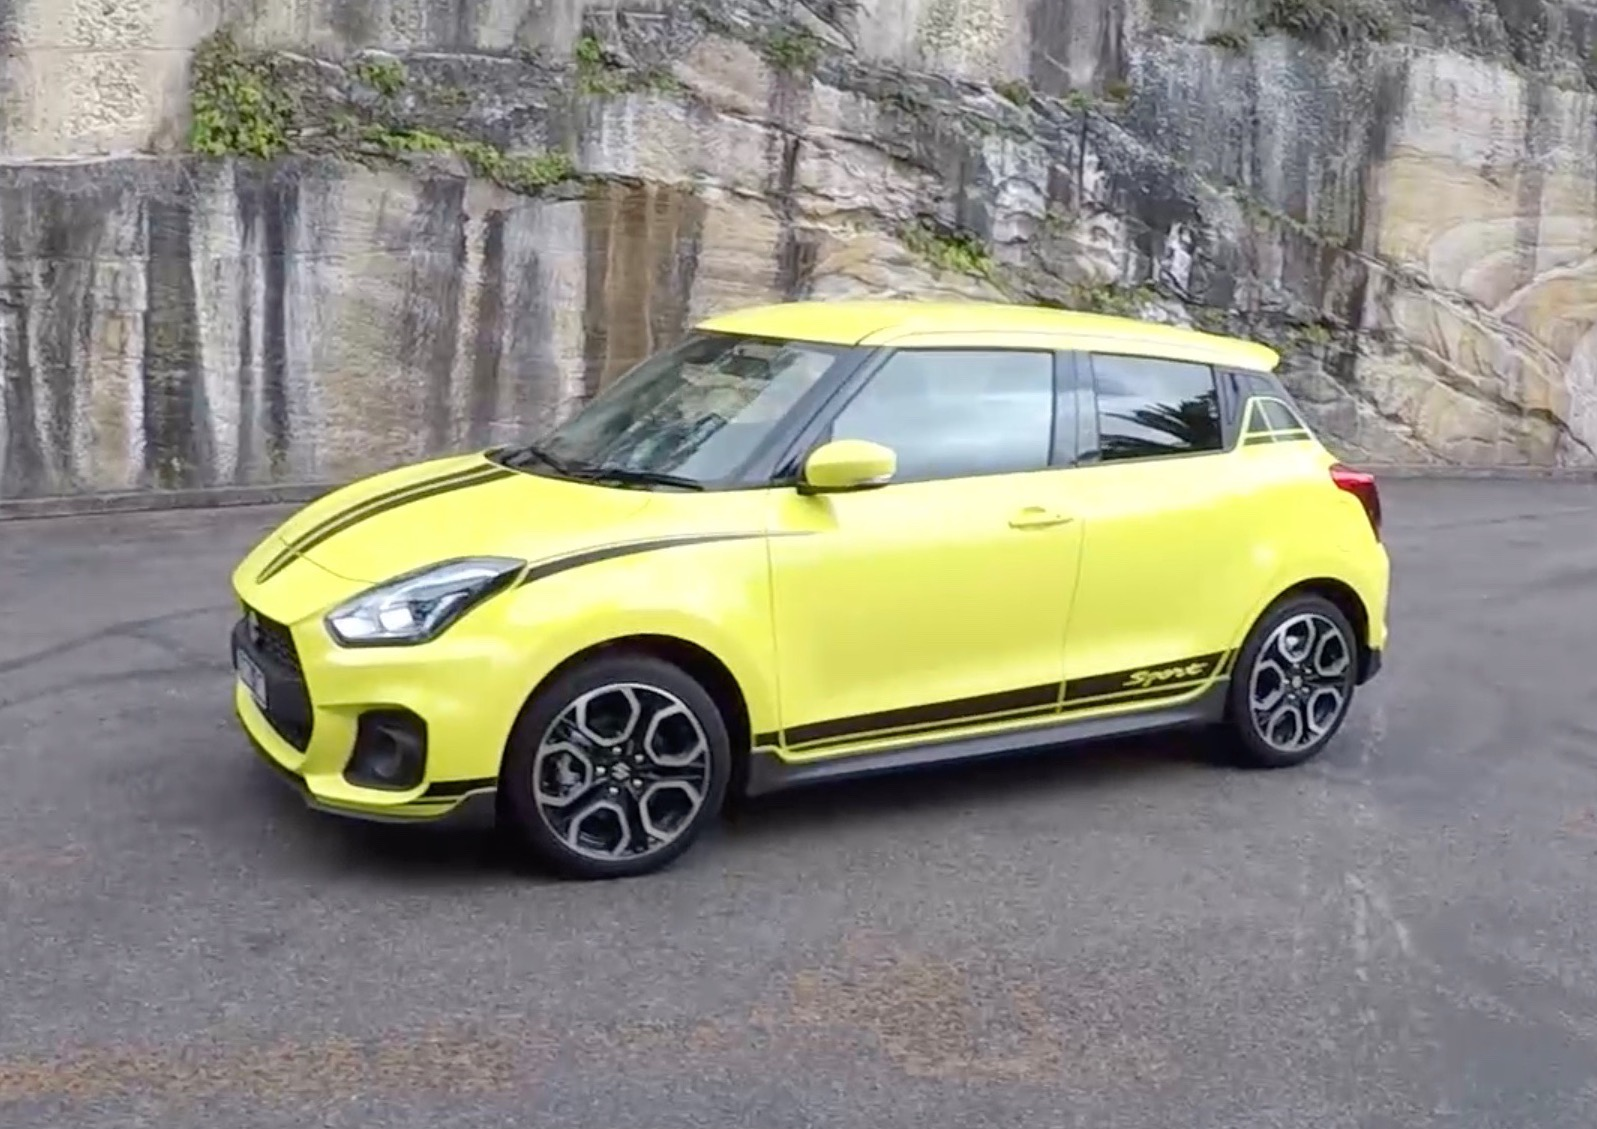 2018 suzuki swift sport pov review first impressions video performancedrive. Black Bedroom Furniture Sets. Home Design Ideas